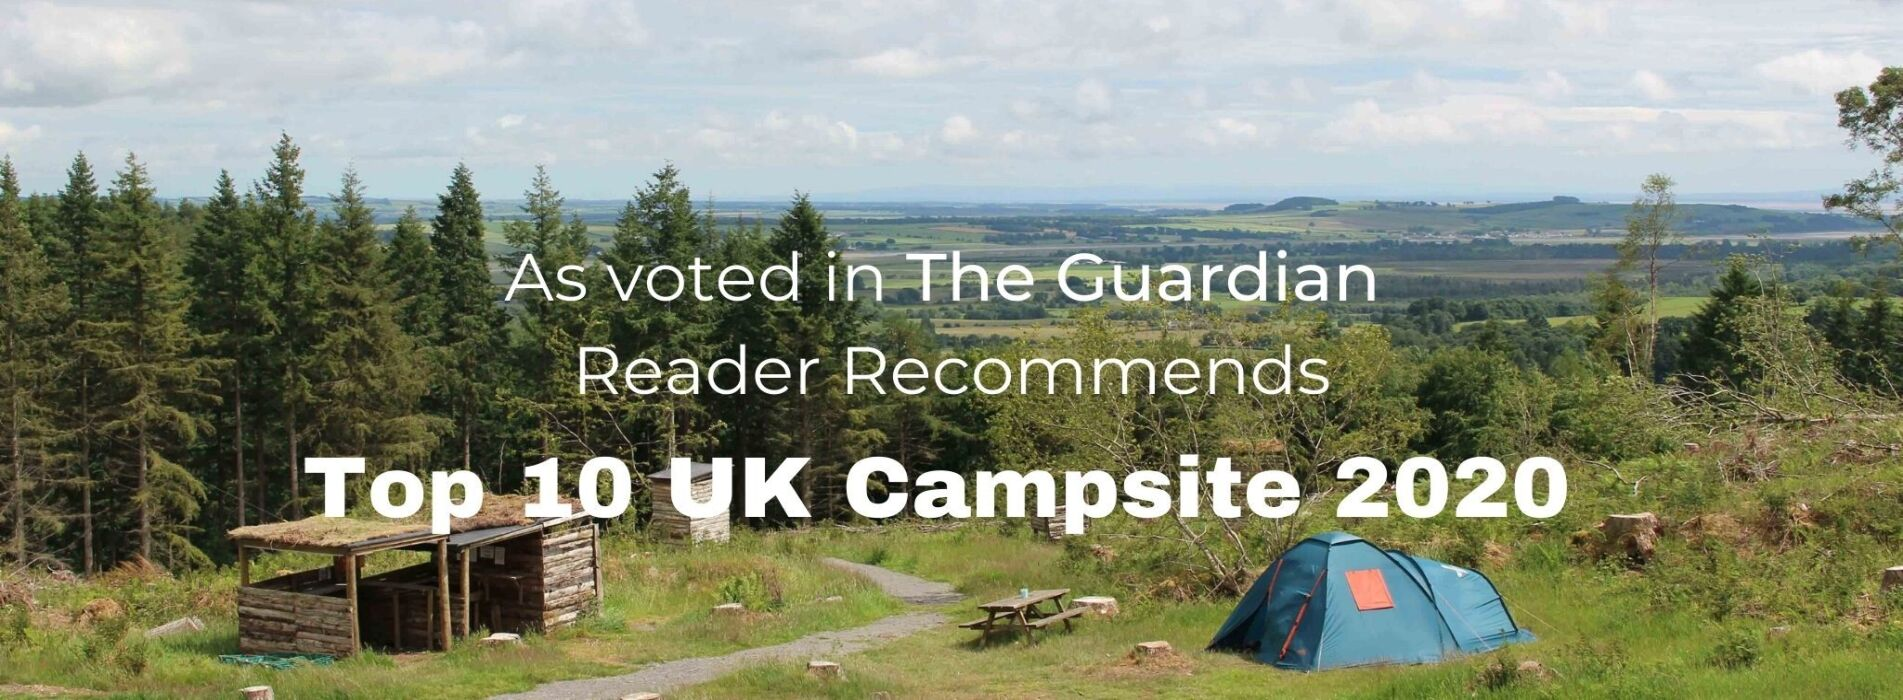 The Guardian UK Top 10 Campsite